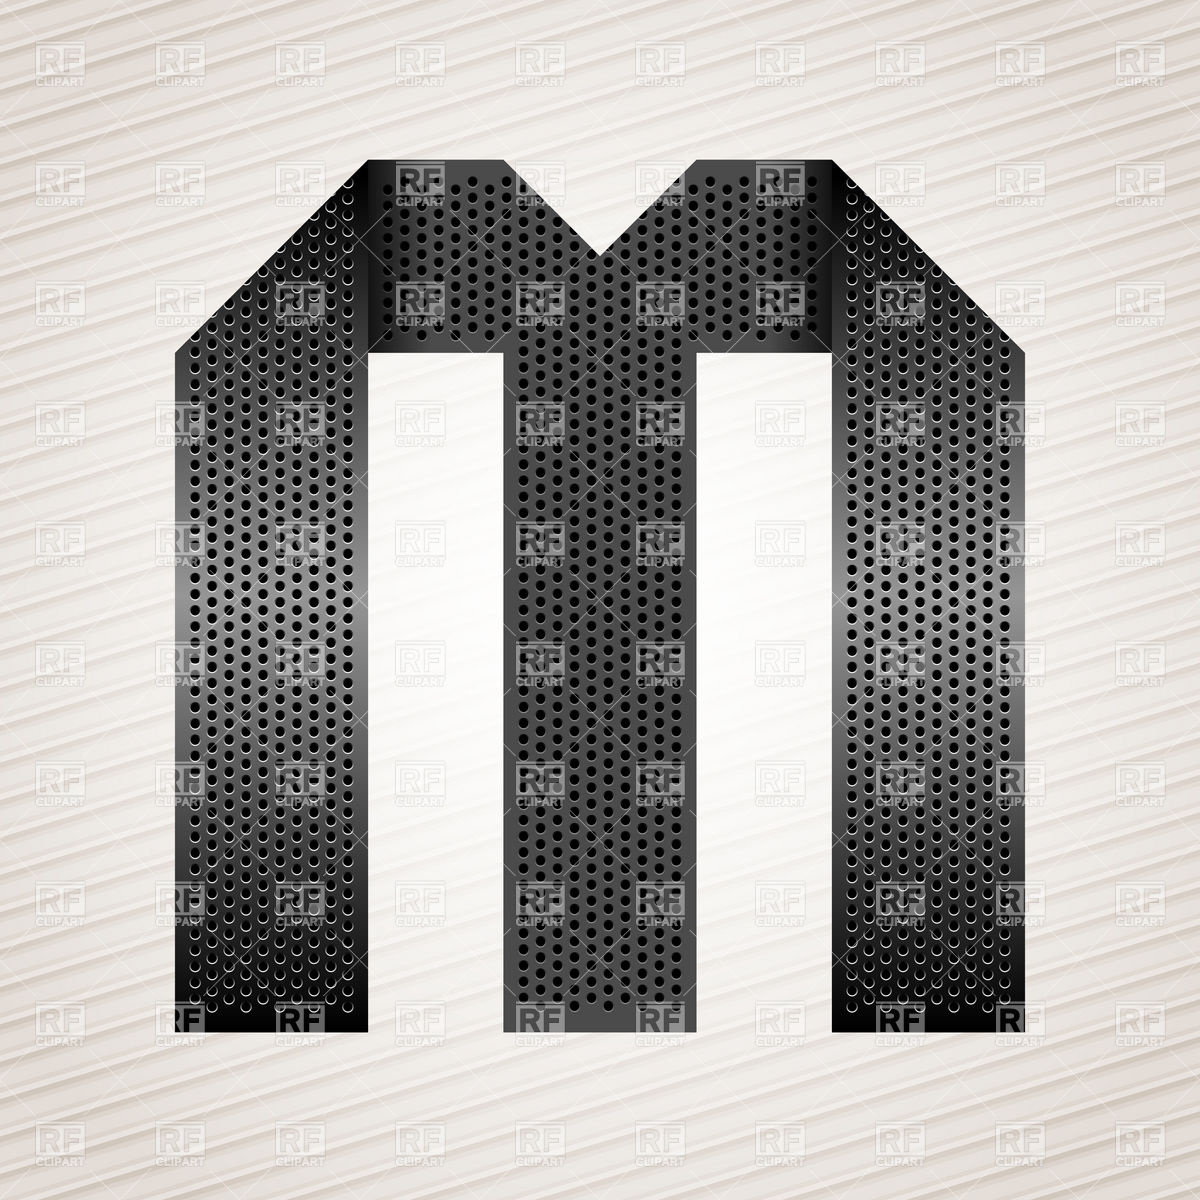 1200x1200 Alphabet Made Of Folded Metal Perforated Ribbon, Letter M Vector